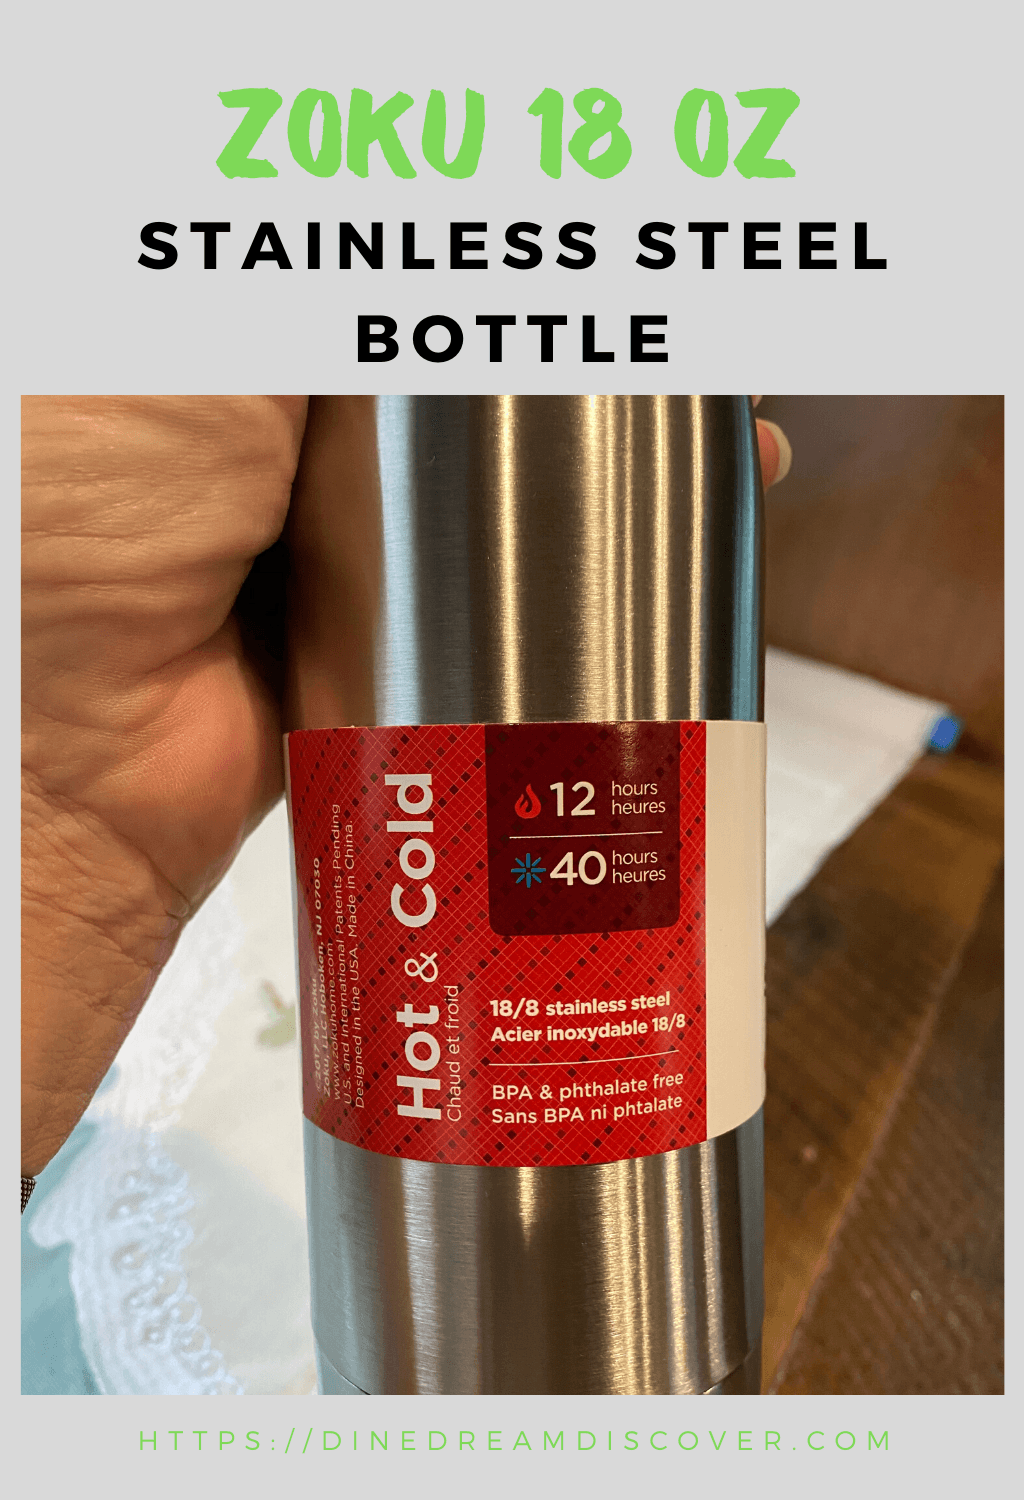 stainless steel hot and cold bottle